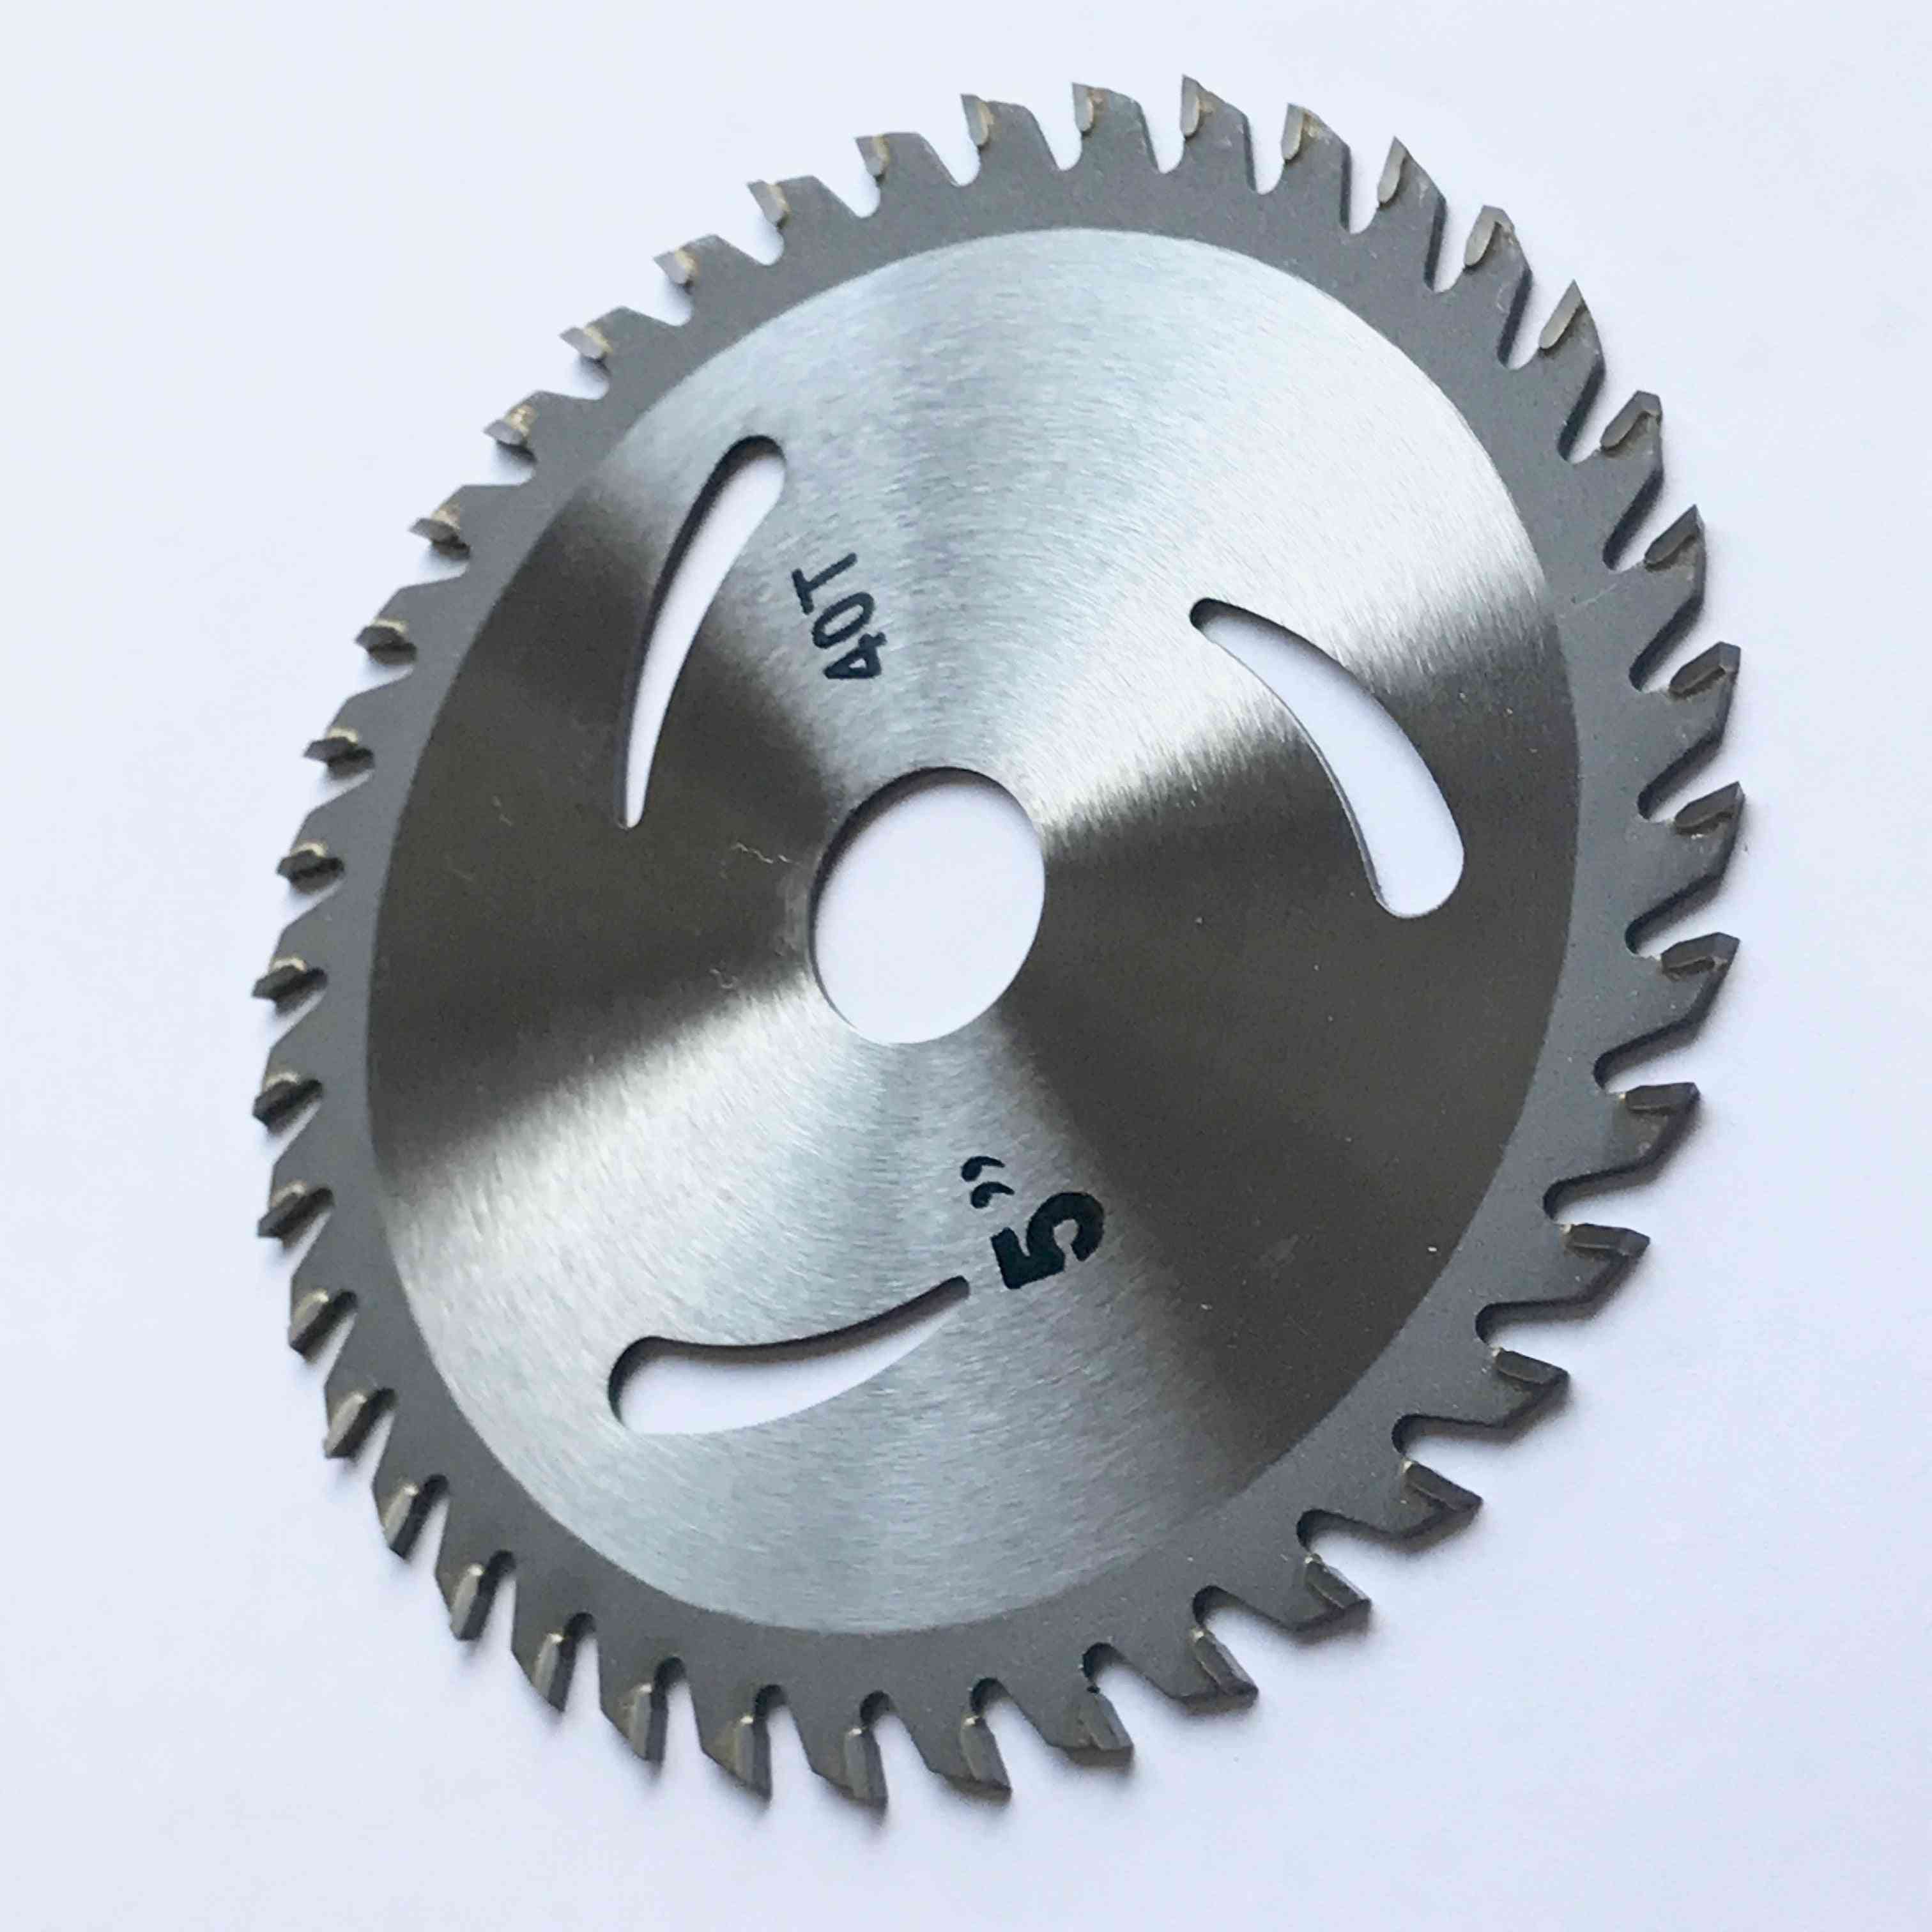 Hottest Sale Of Tct Saw Blade Cutting Disc For Hardwood Cutting